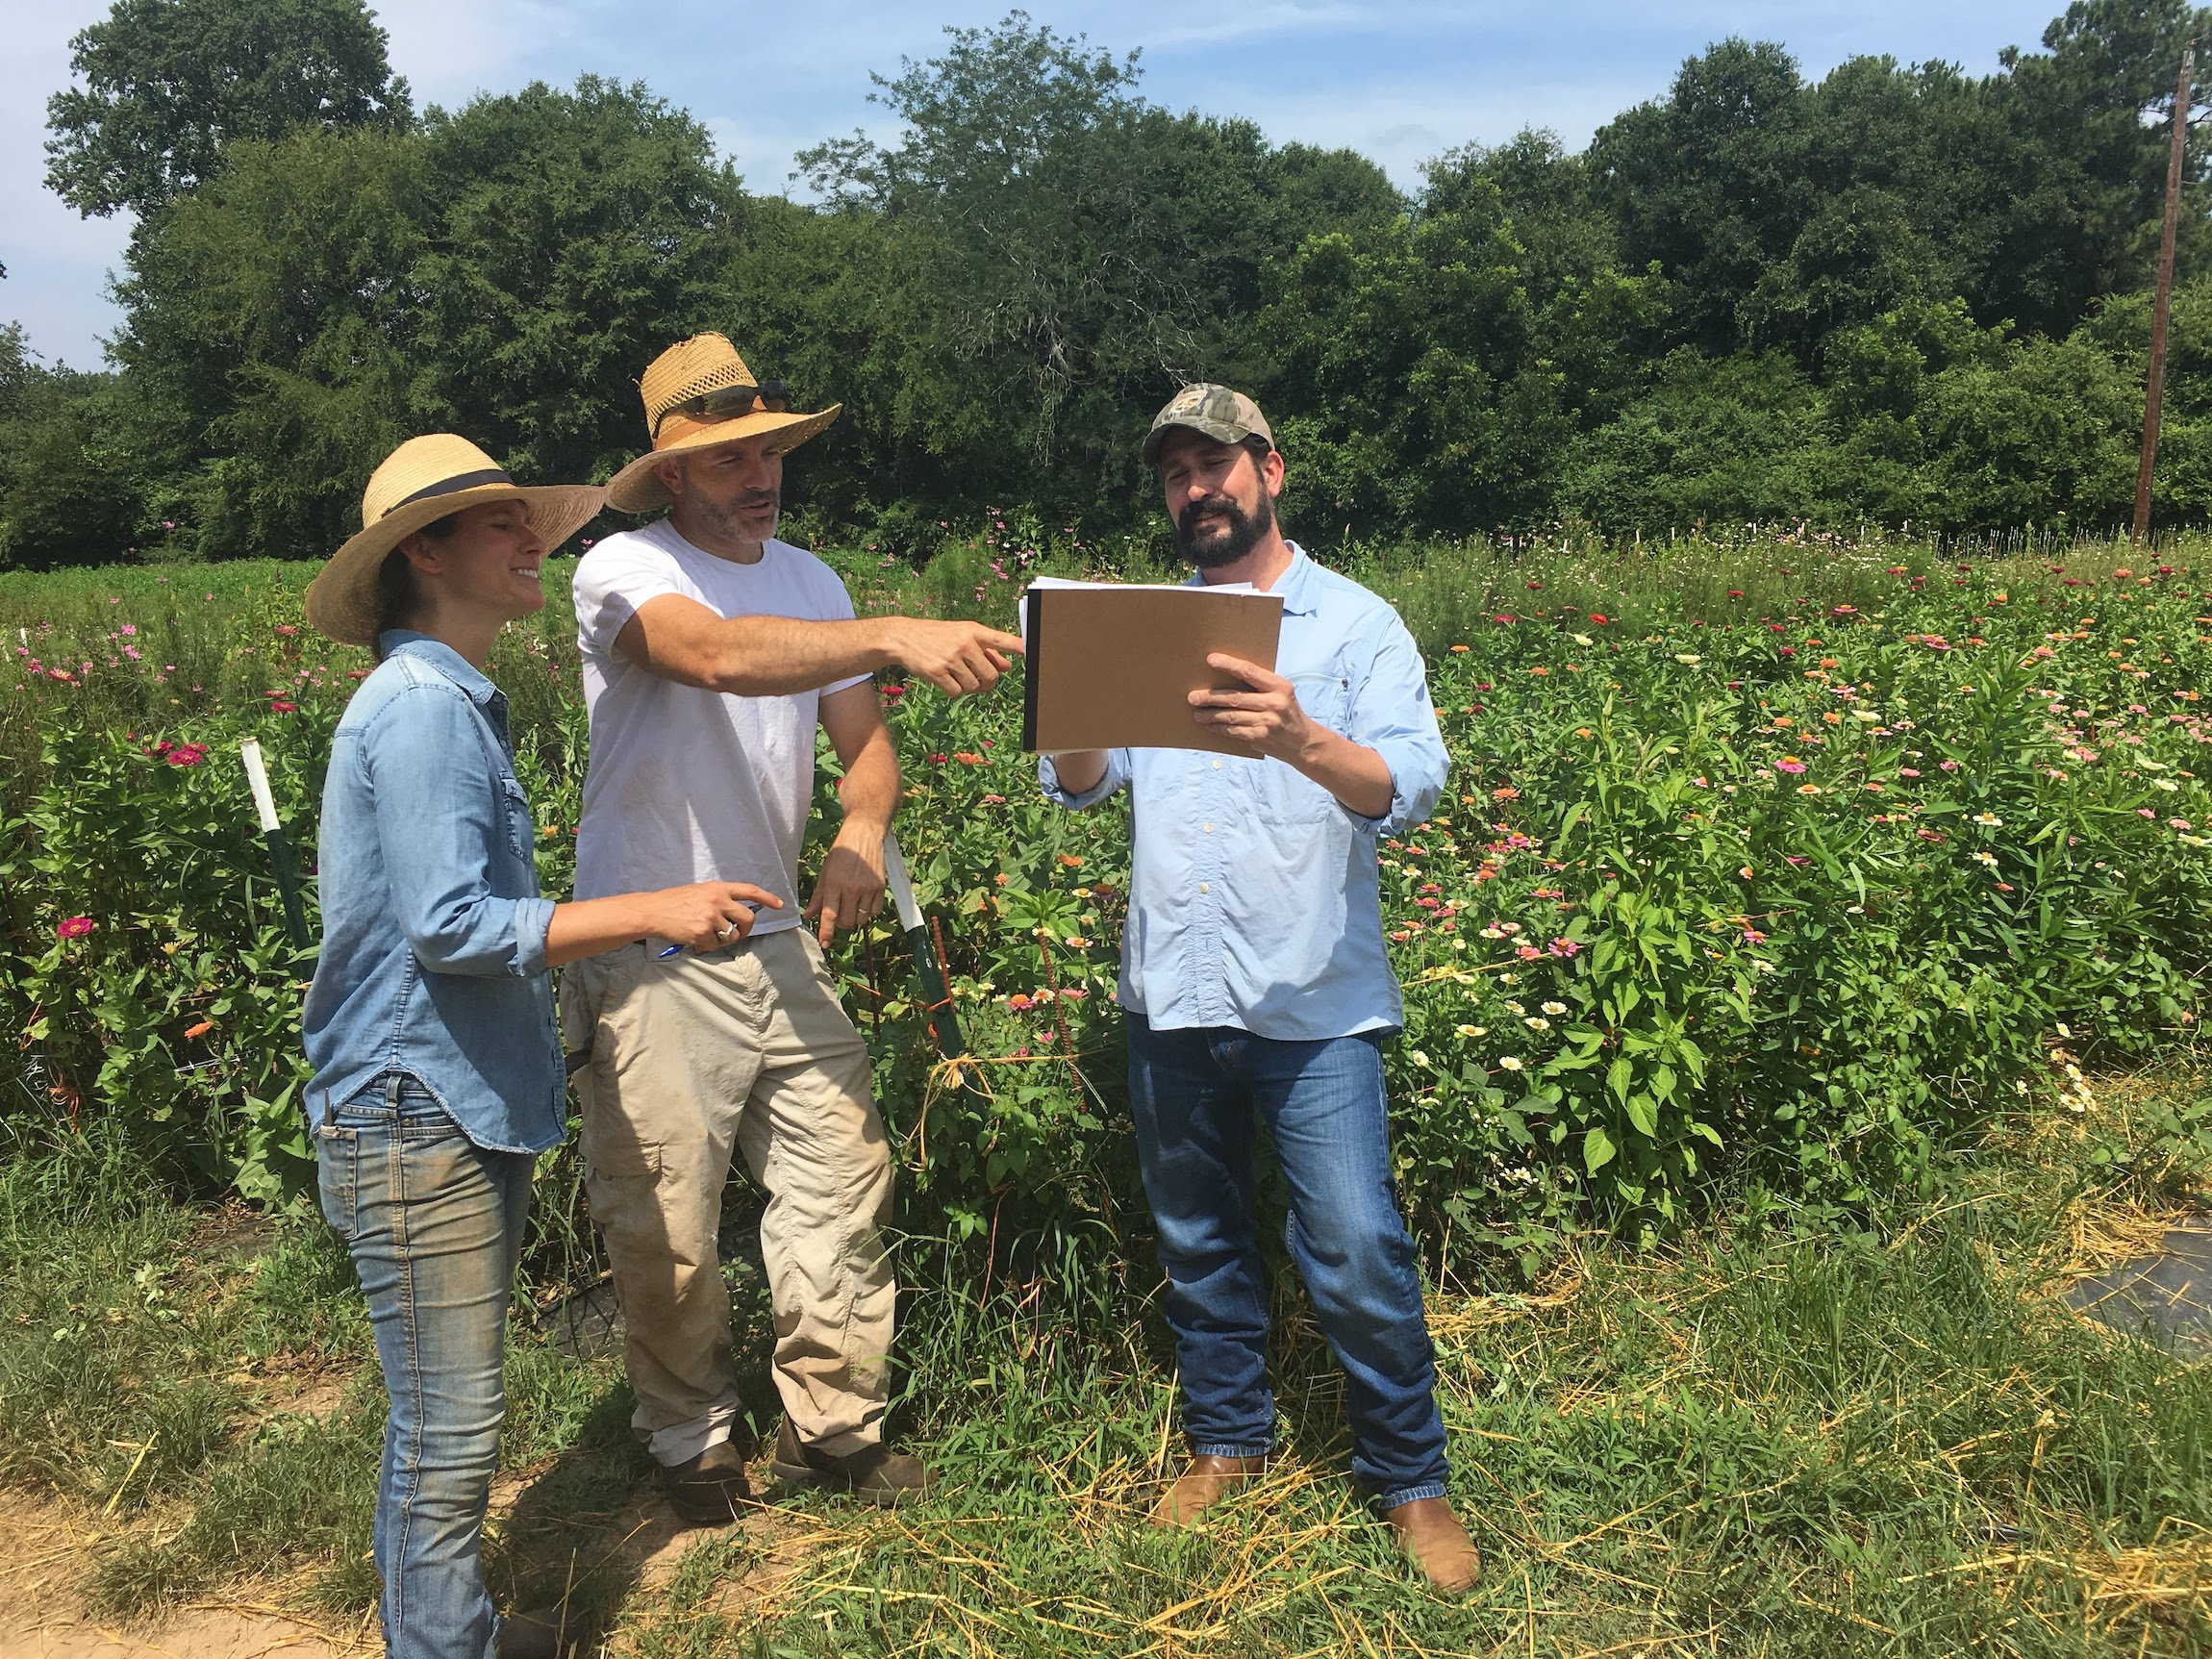 Farmers and Grocery store workers looking at crops to determine which will go to the stores.